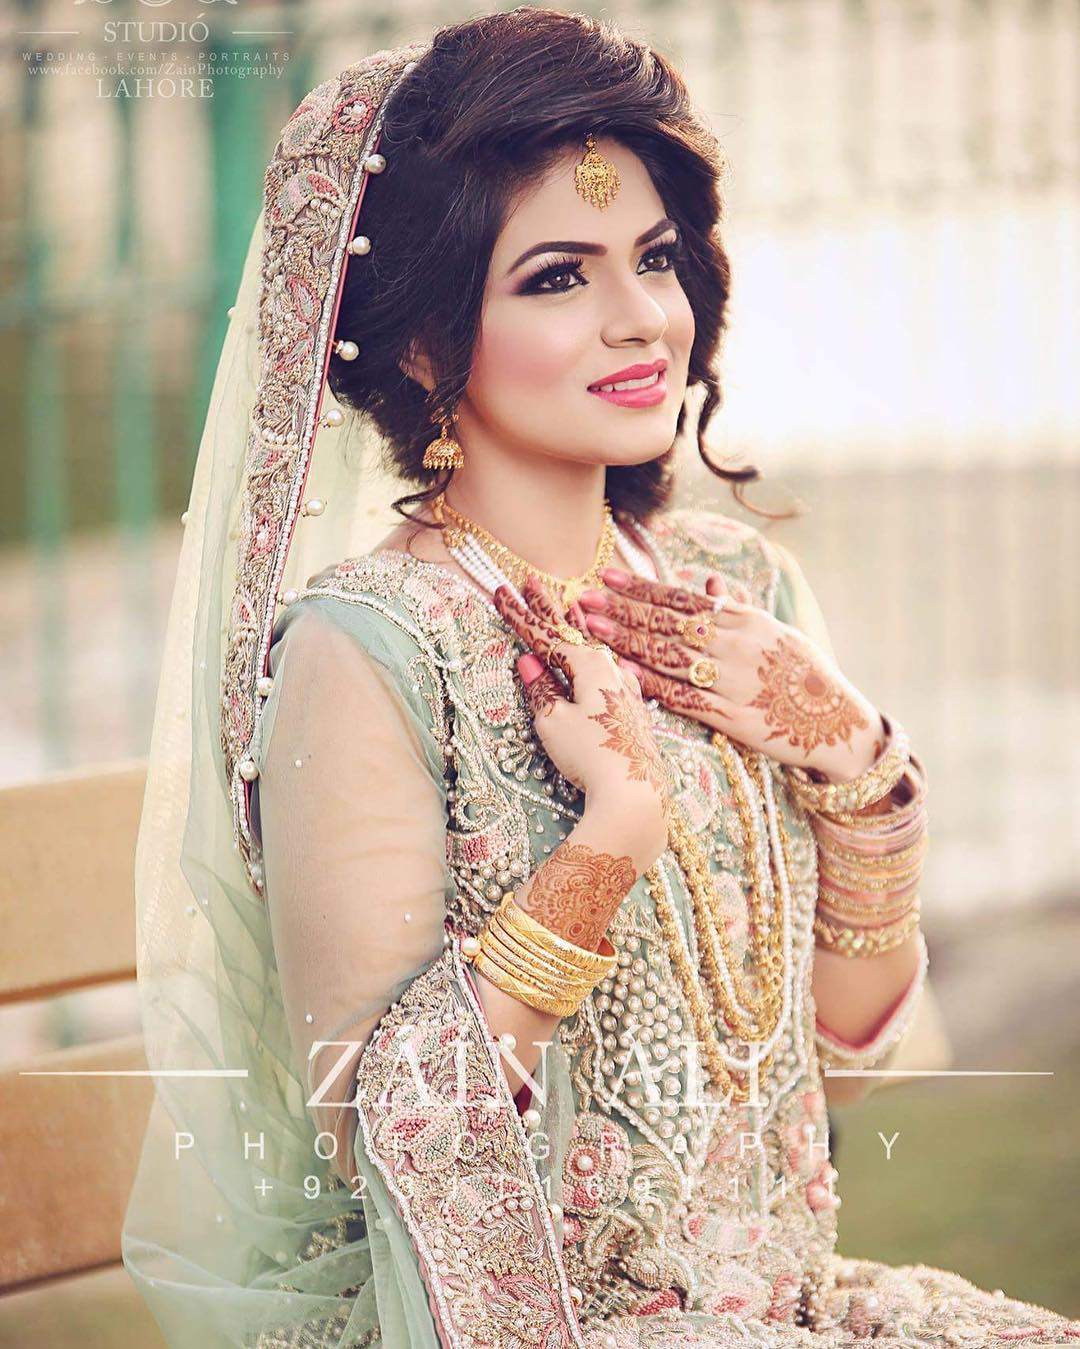 Beautiful Bridal DP For Facebook Profile Picture Collection